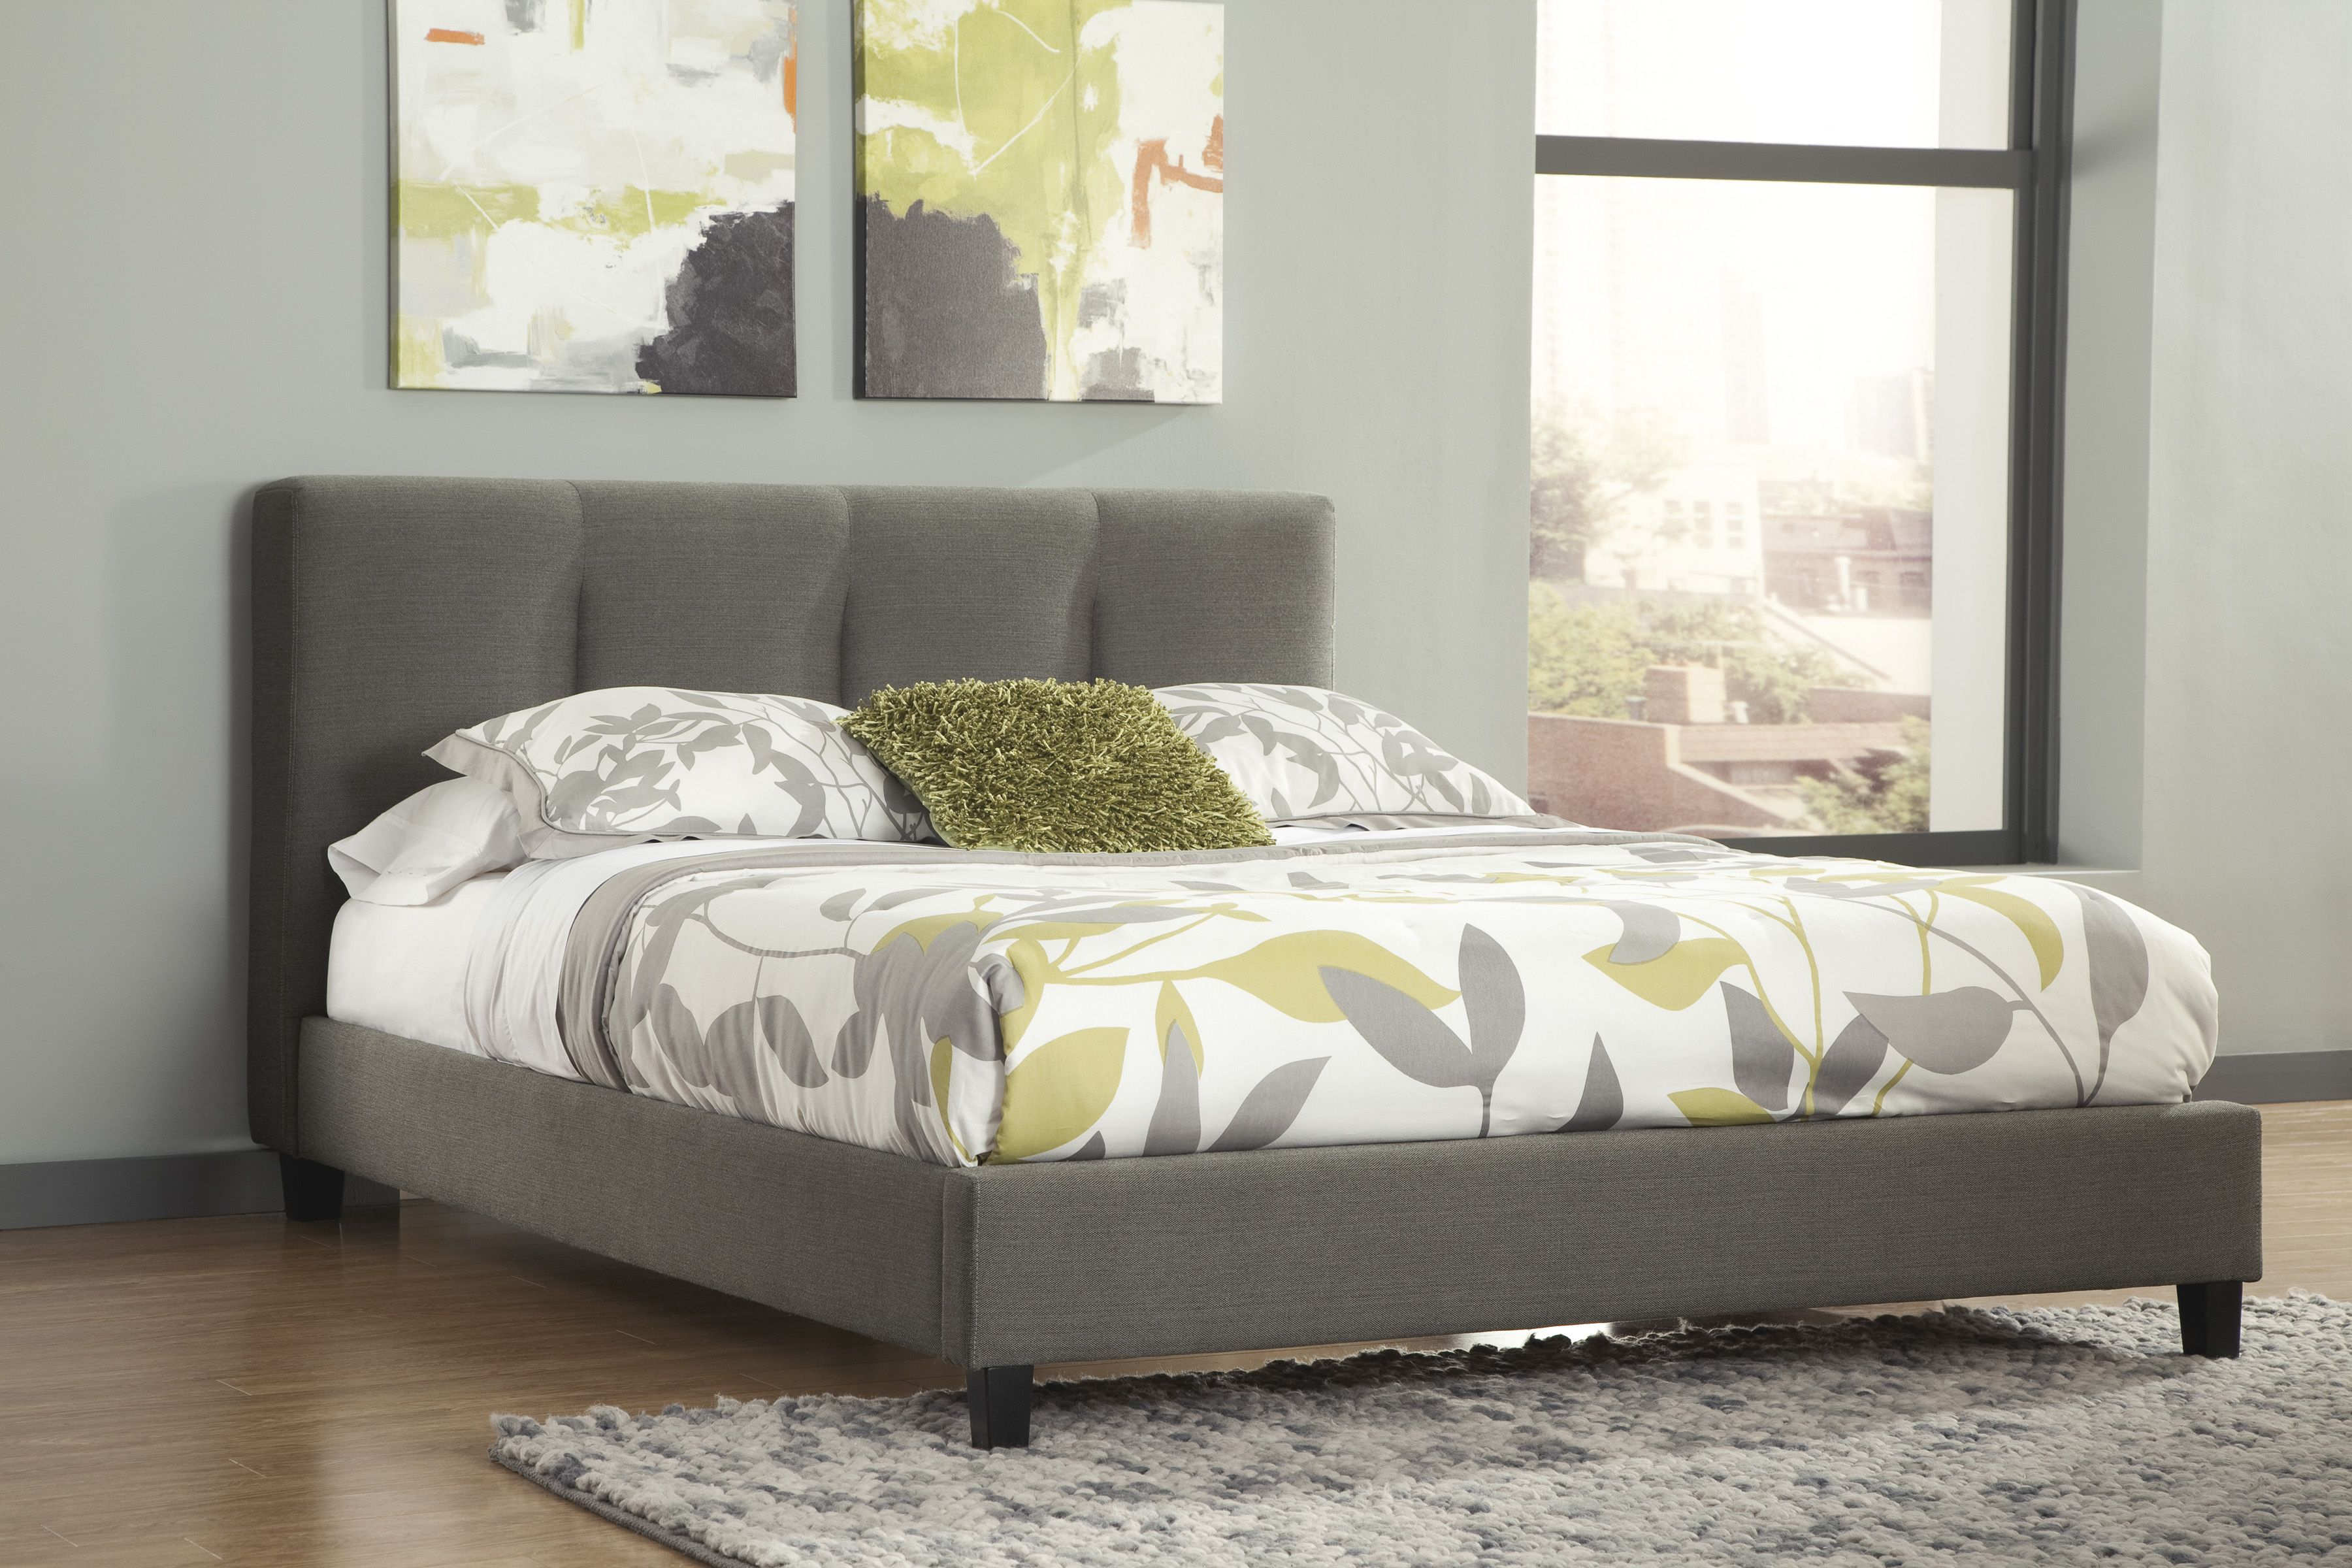 This Queen Upholstered Bed Masters The Art Of Chic Contemporary